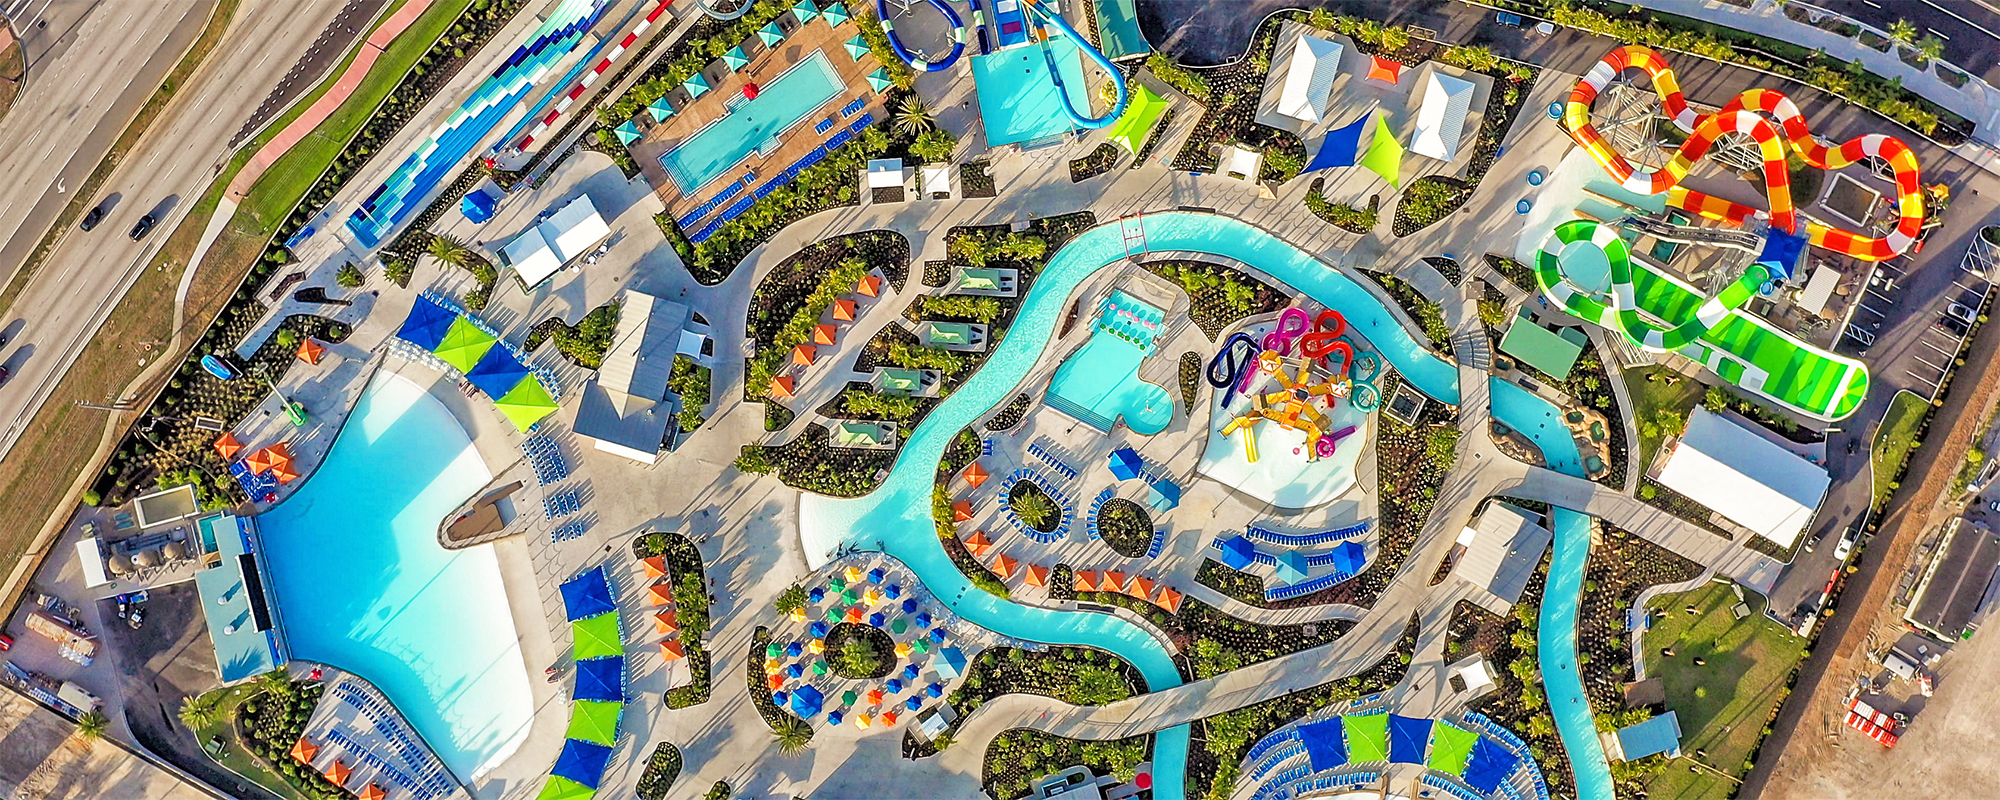 water park at island h20 live overview